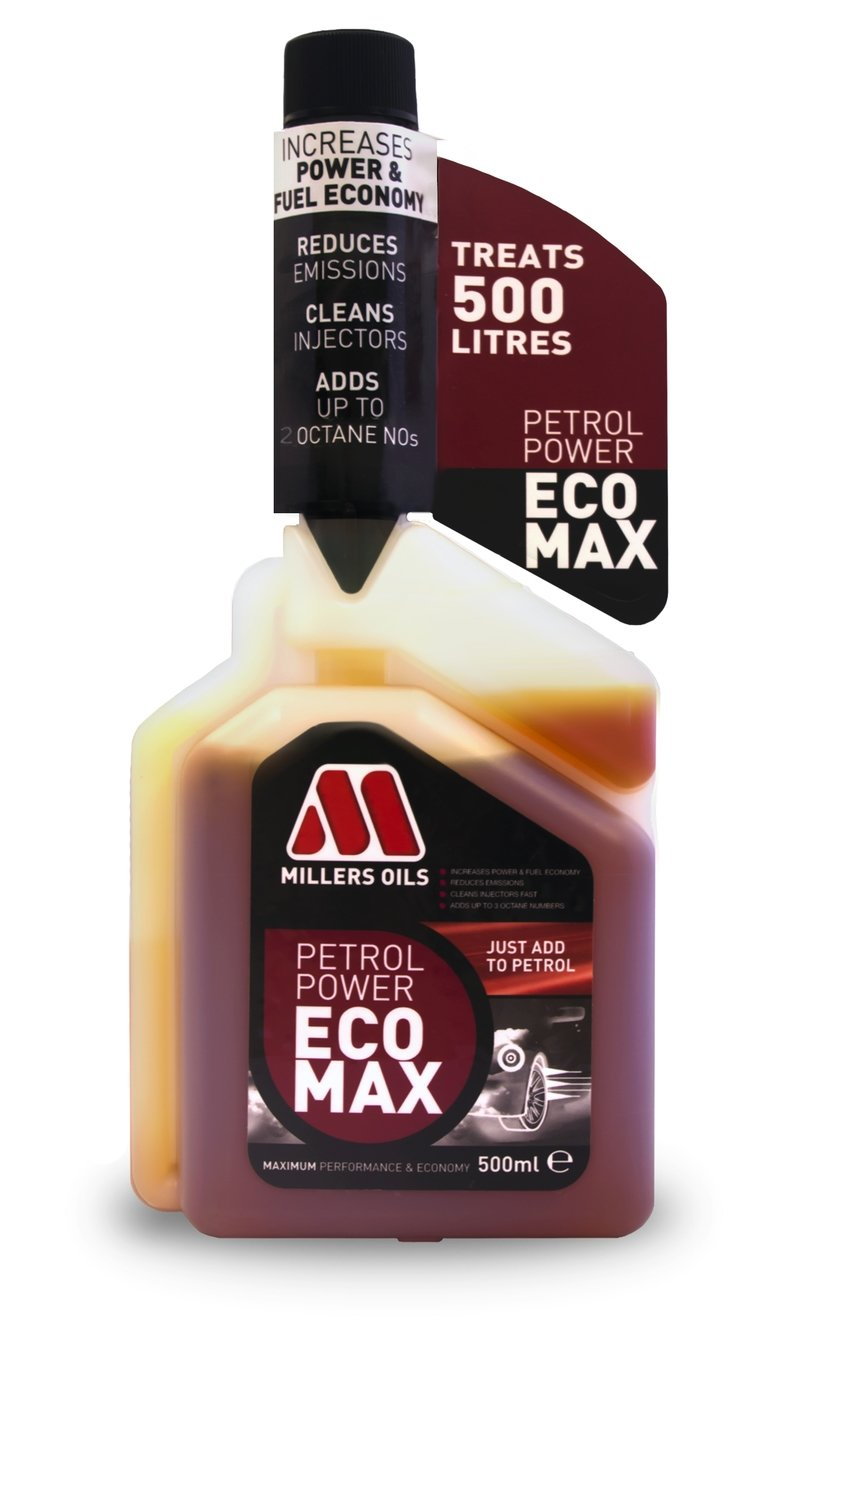 Millers Oils Petrol Power ECOMAX multi-dose